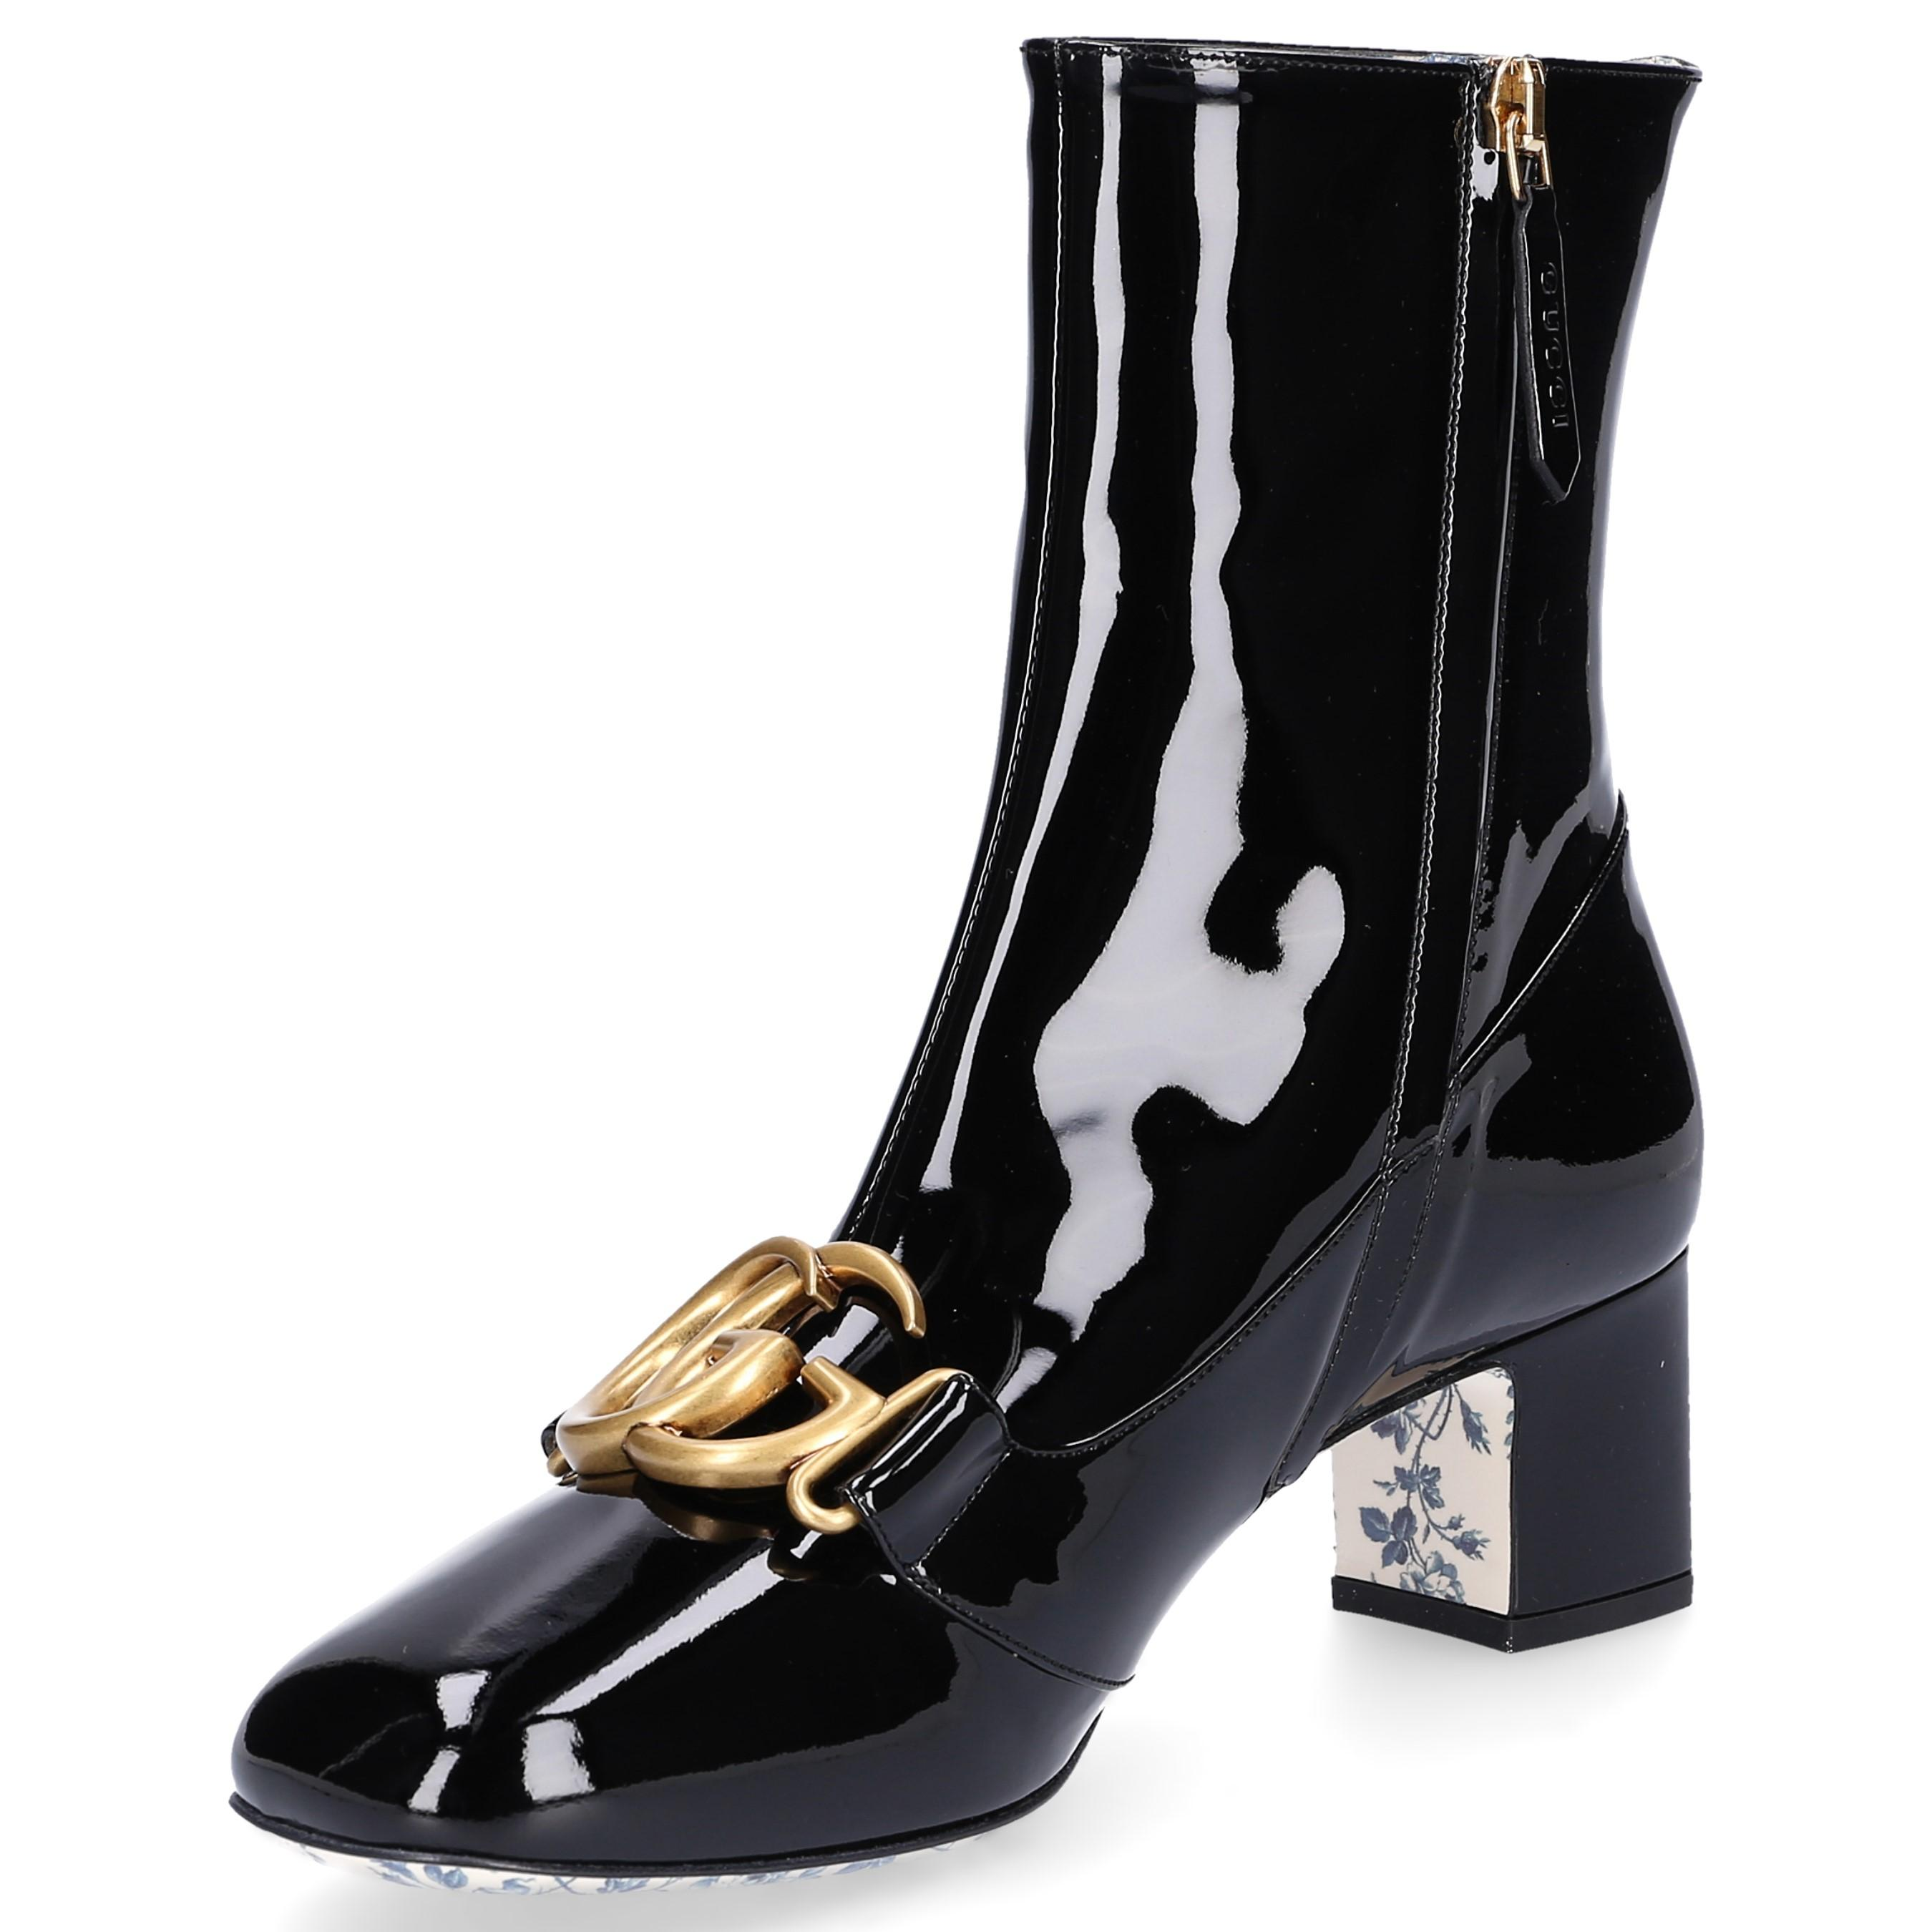 04b64c7d4e3 Gucci - Black Embellished Patent Leather Ankle Boots - Lyst. View fullscreen